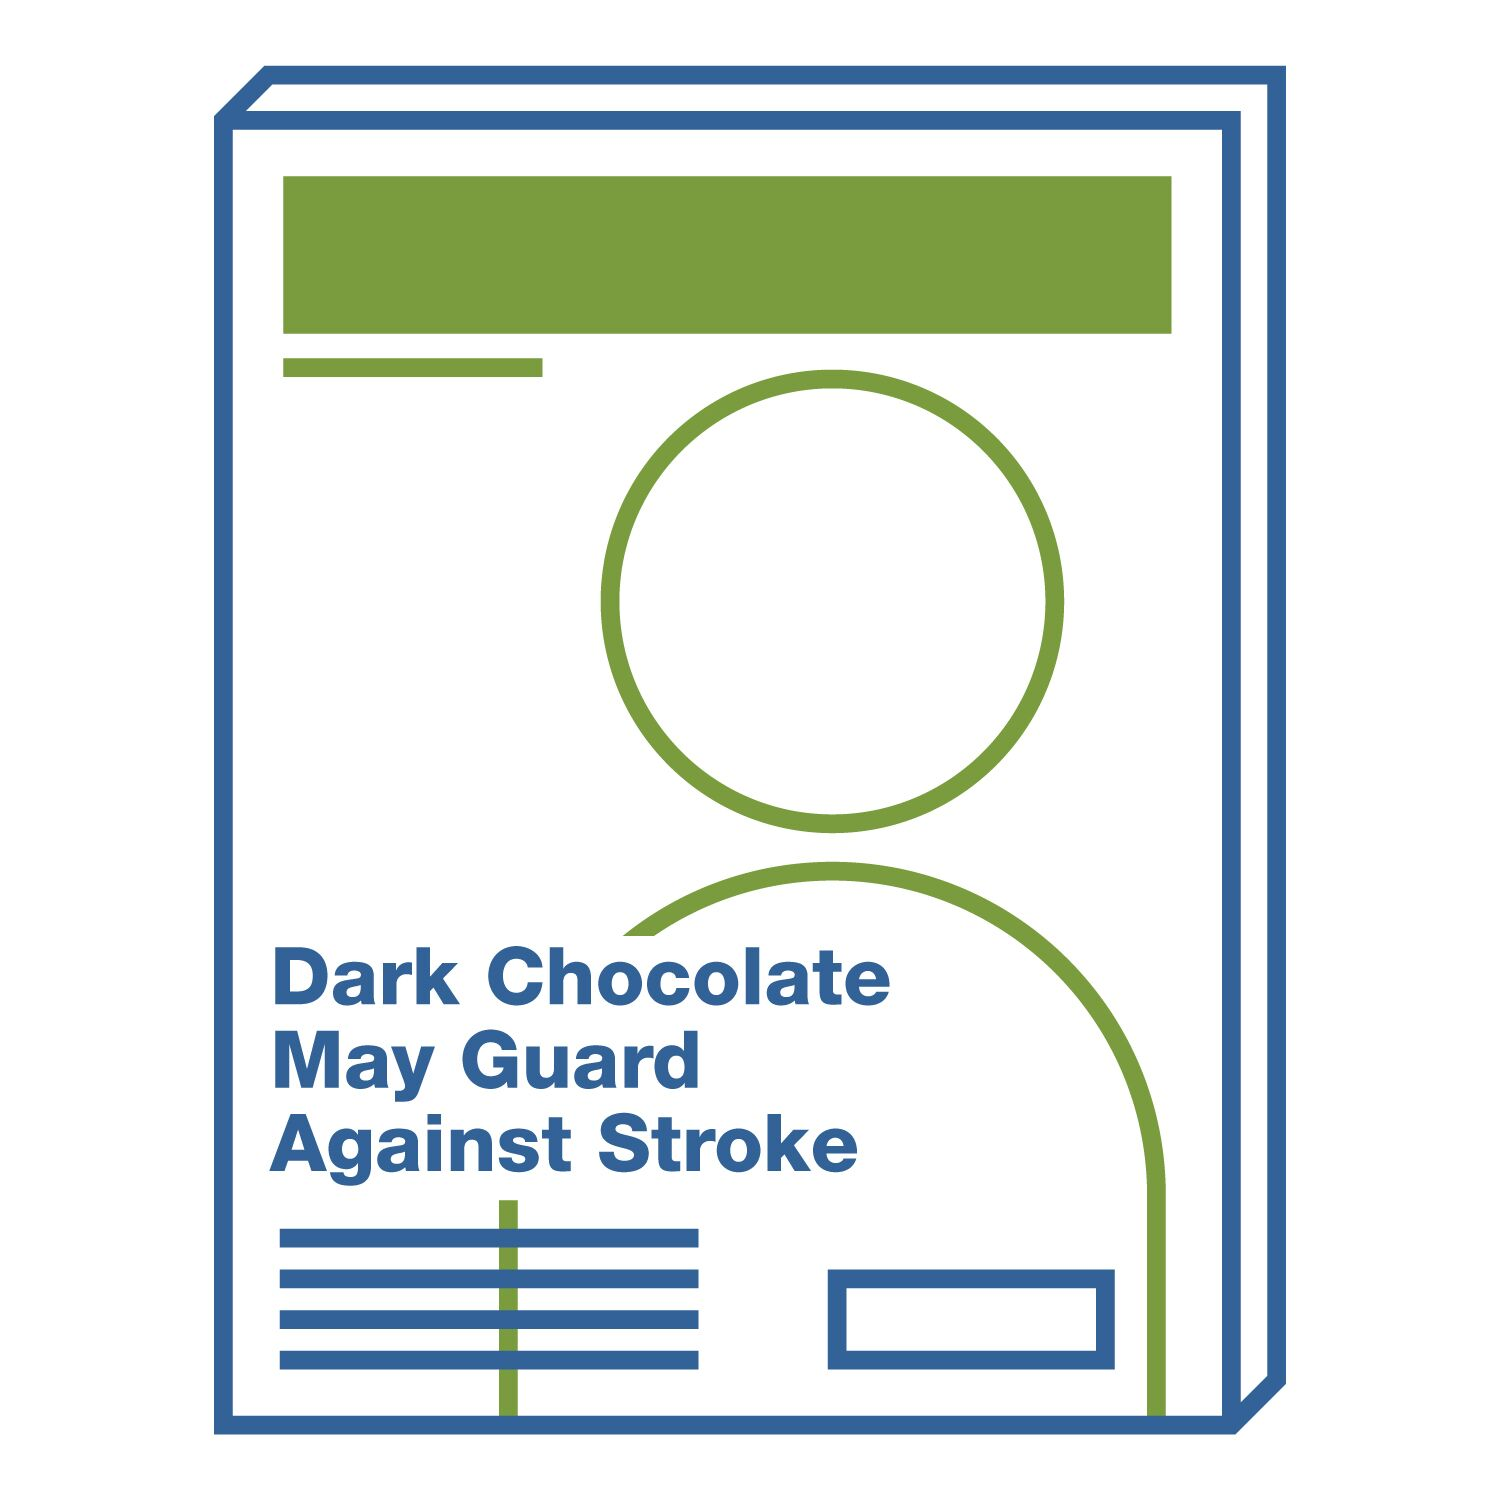 Headline: Dark Chocolate May Guard Against Stroke